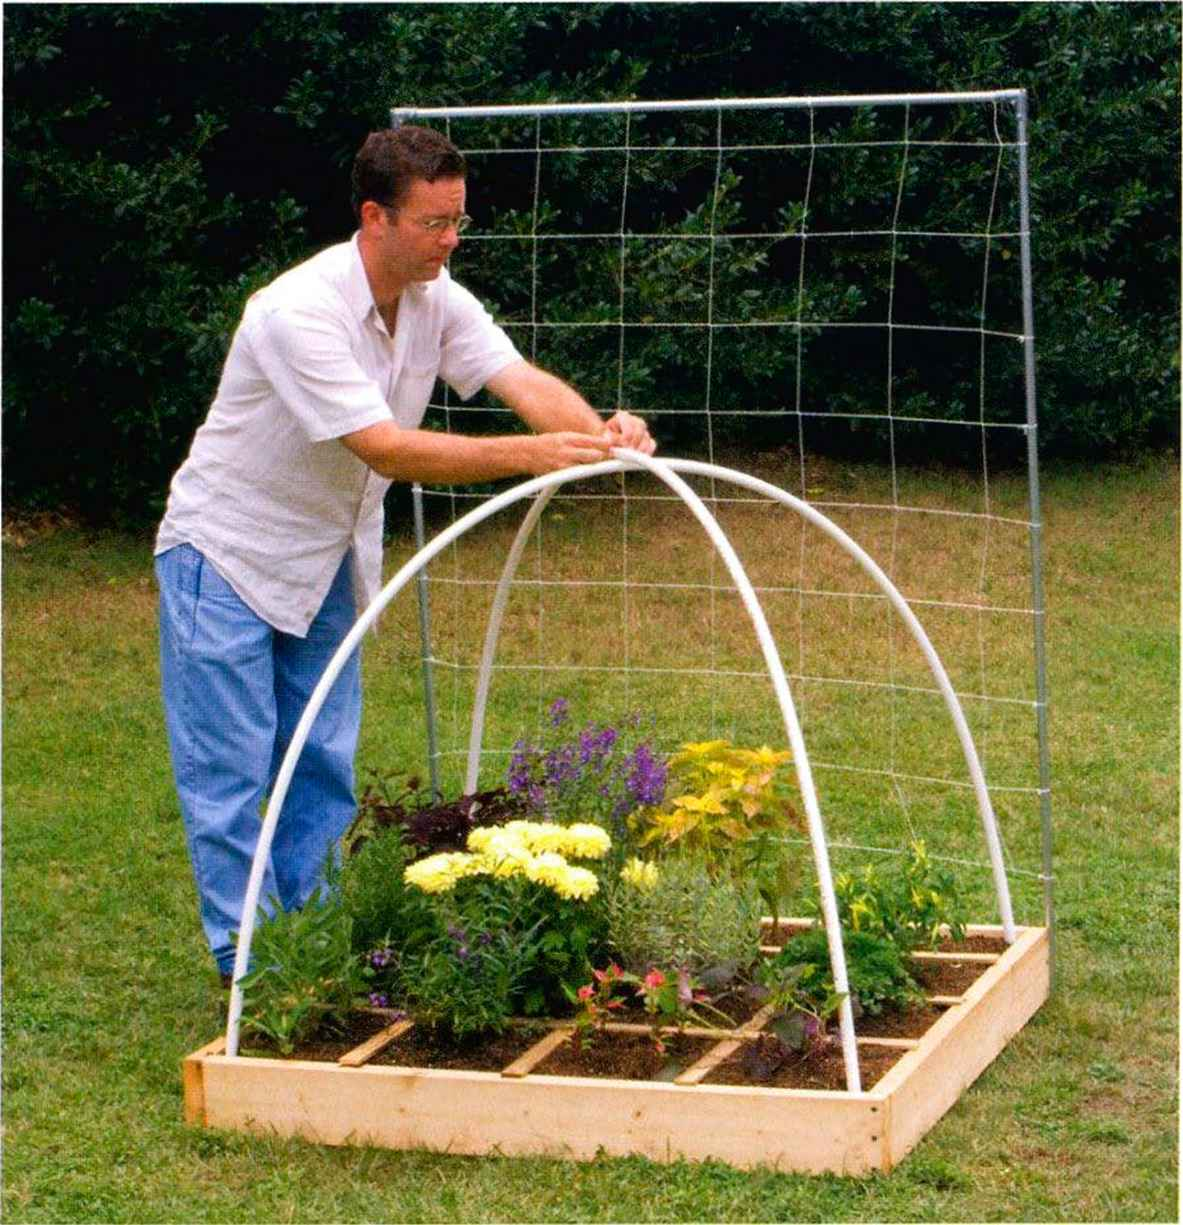 Greenhouse For Square Foot Gardening